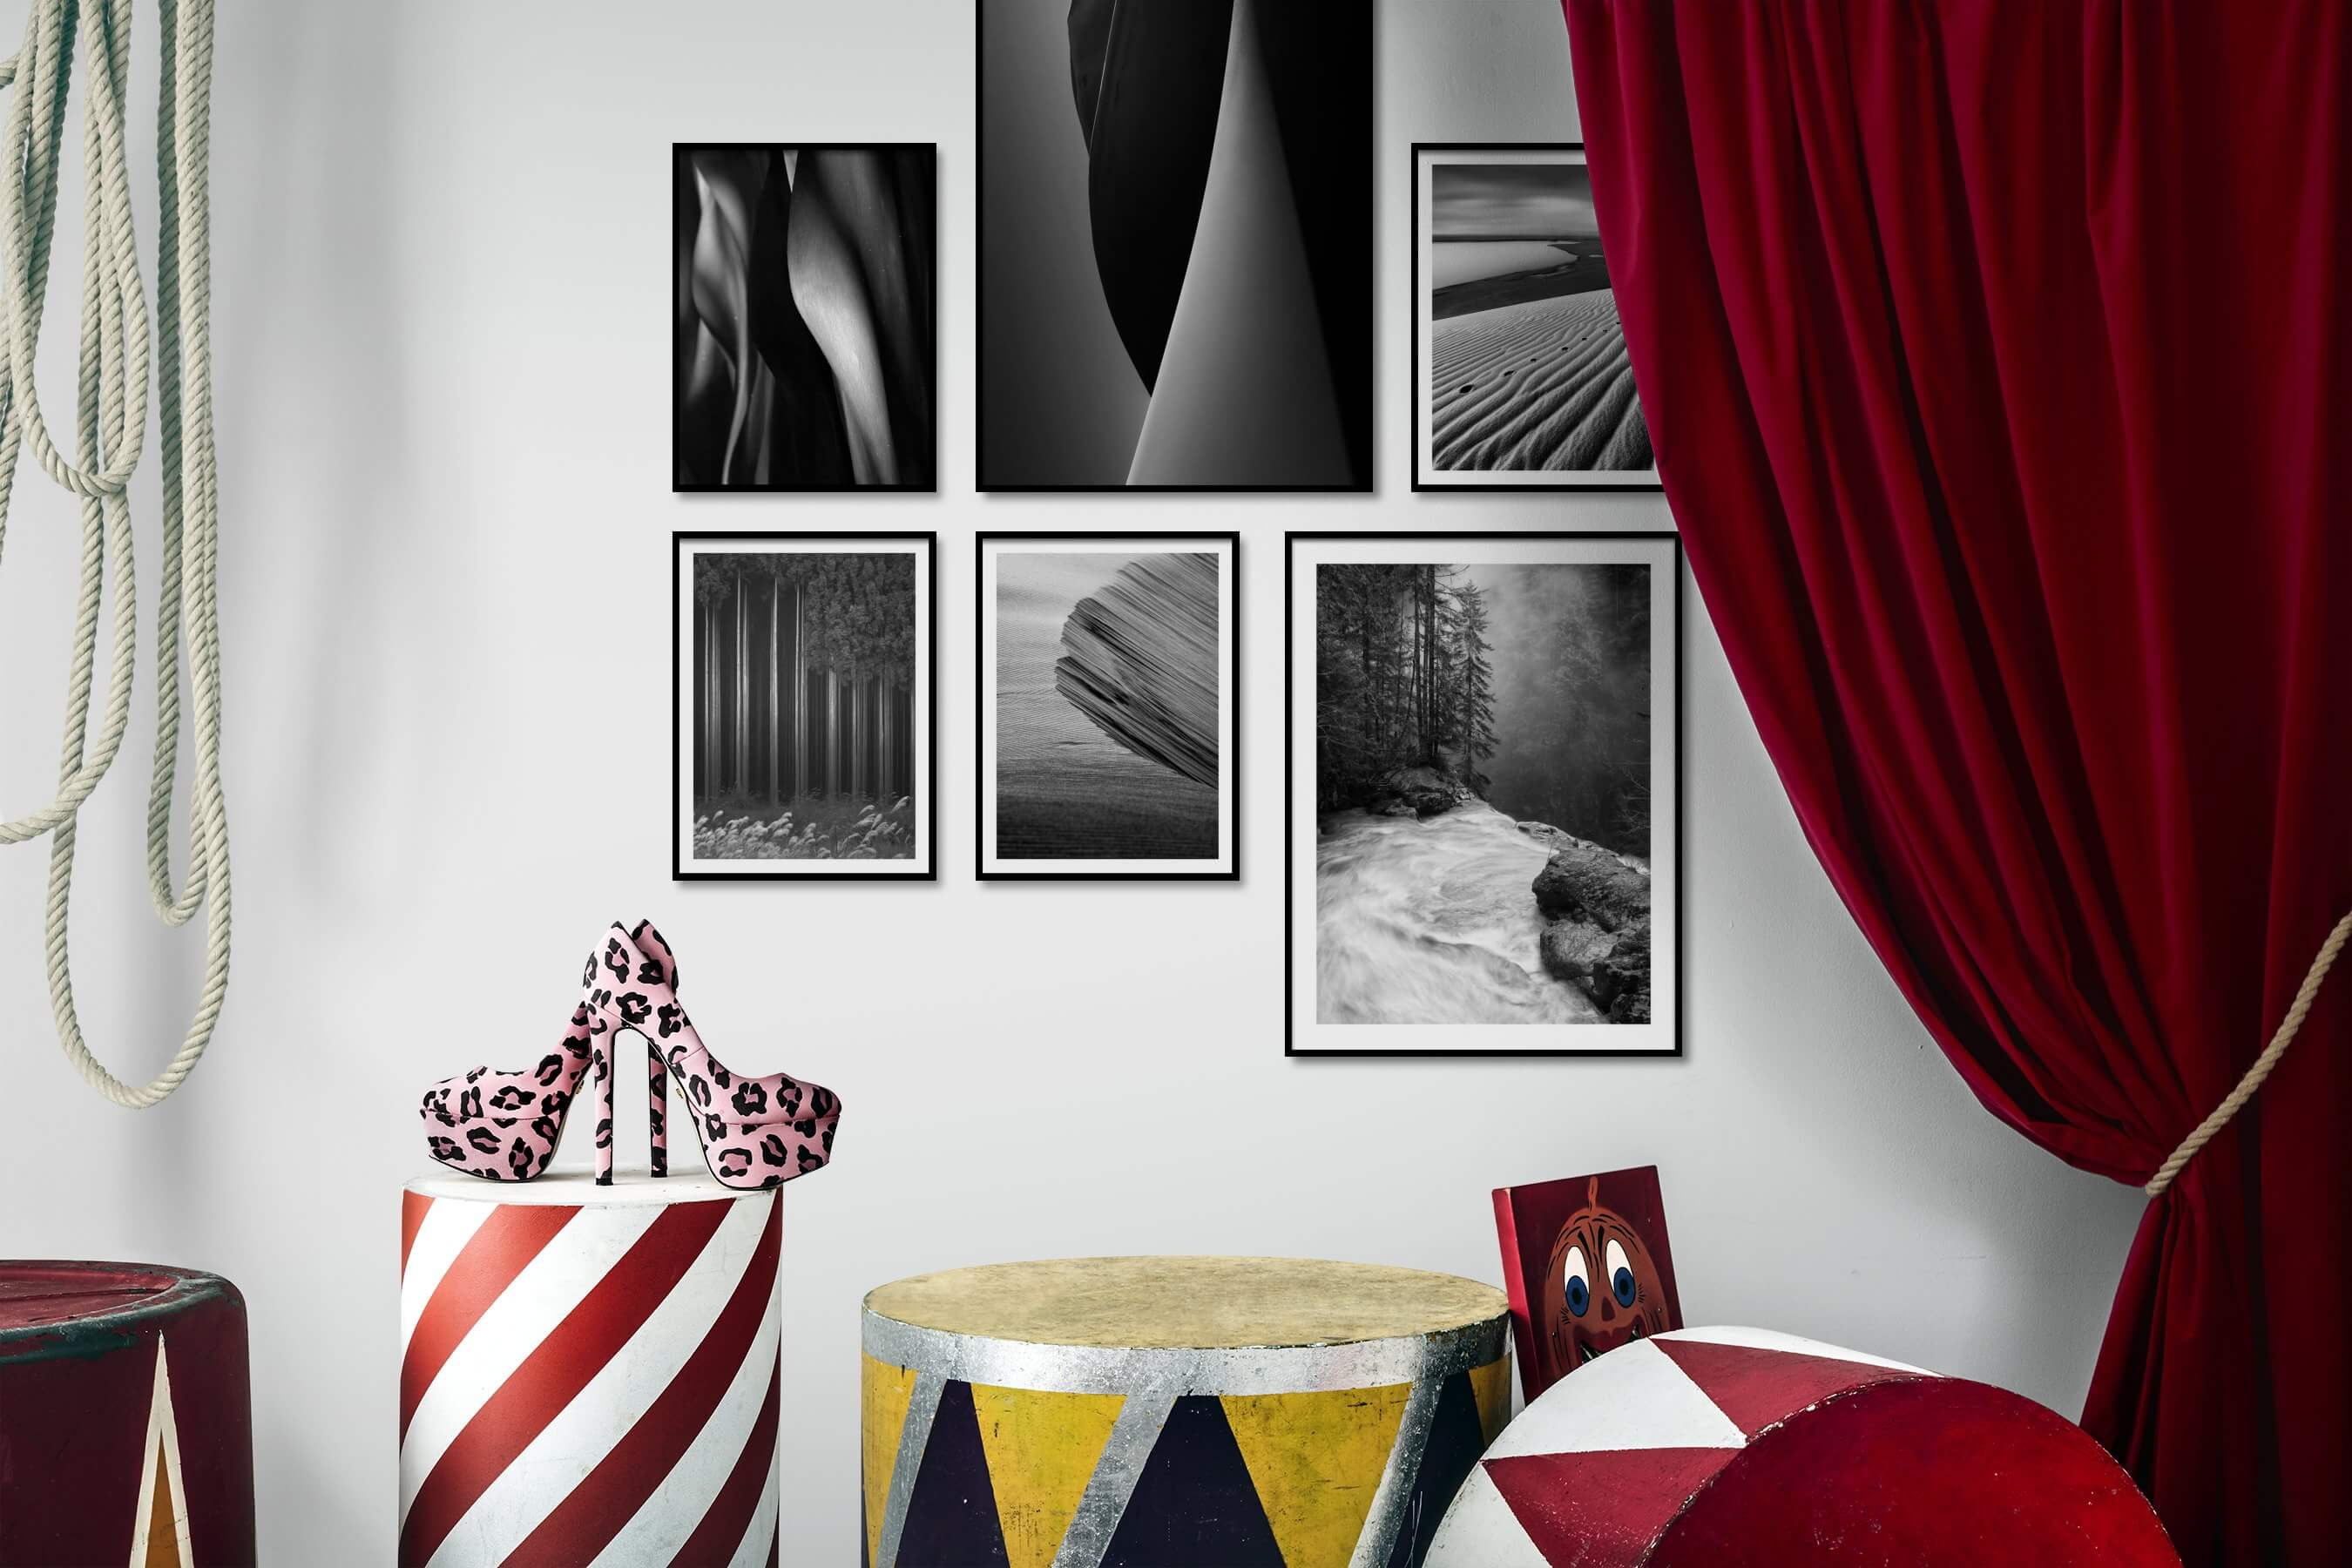 Gallery wall idea with six framed pictures arranged on a wall depicting Black & White, For the Moderate, Nature, and For the Minimalist